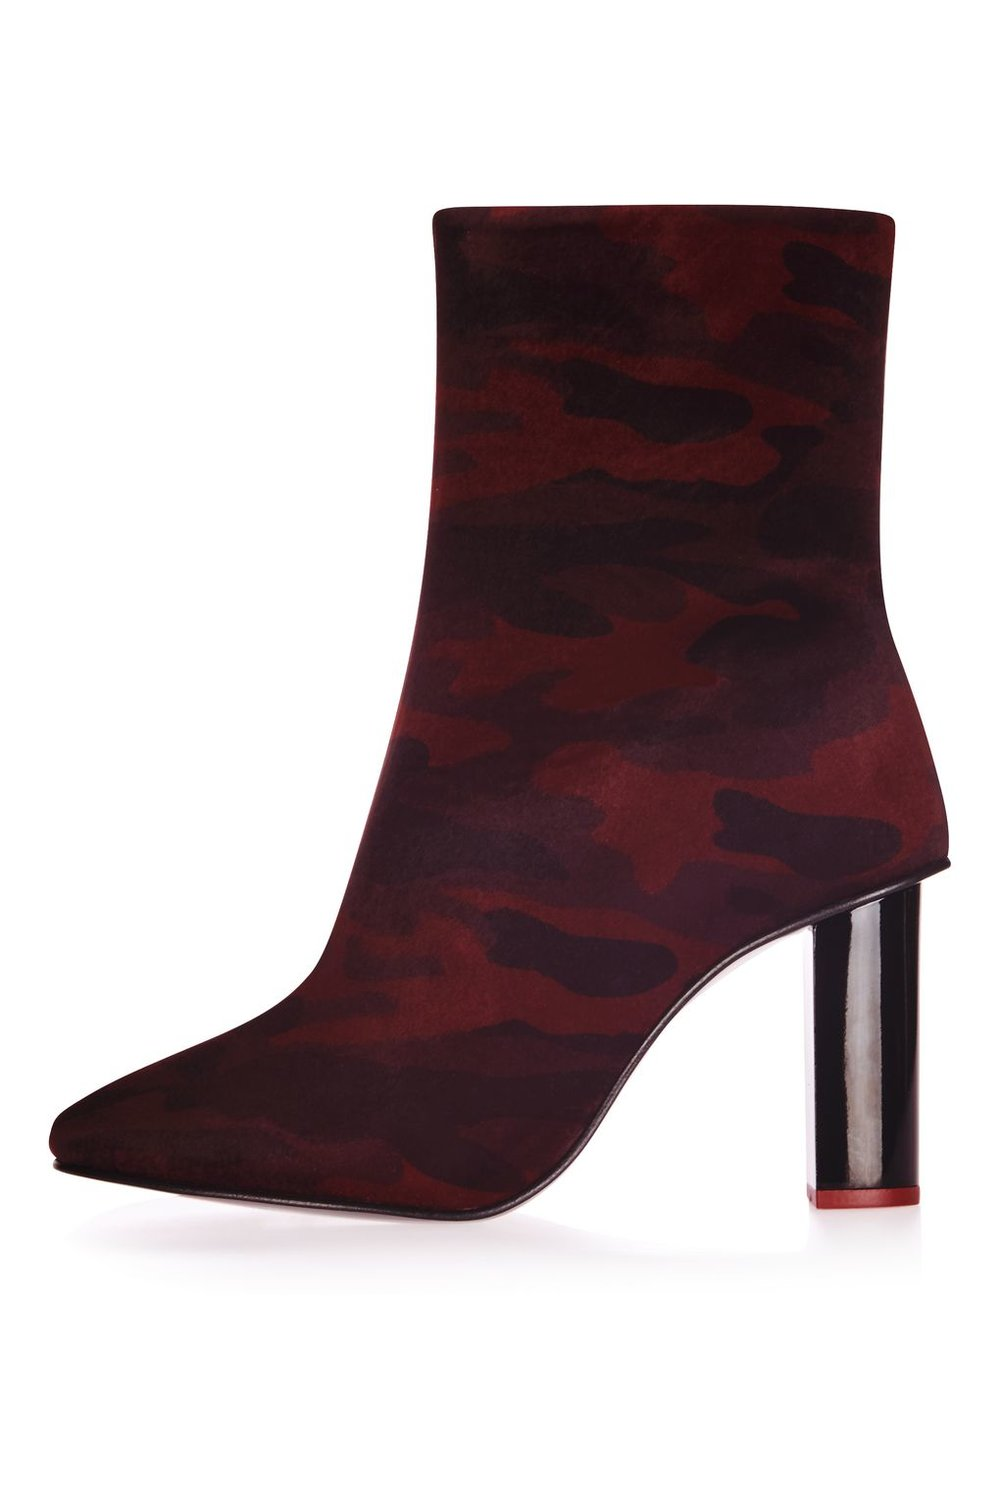 Matchstick Camo Boot. Available in red, grey. Topshop. $160.